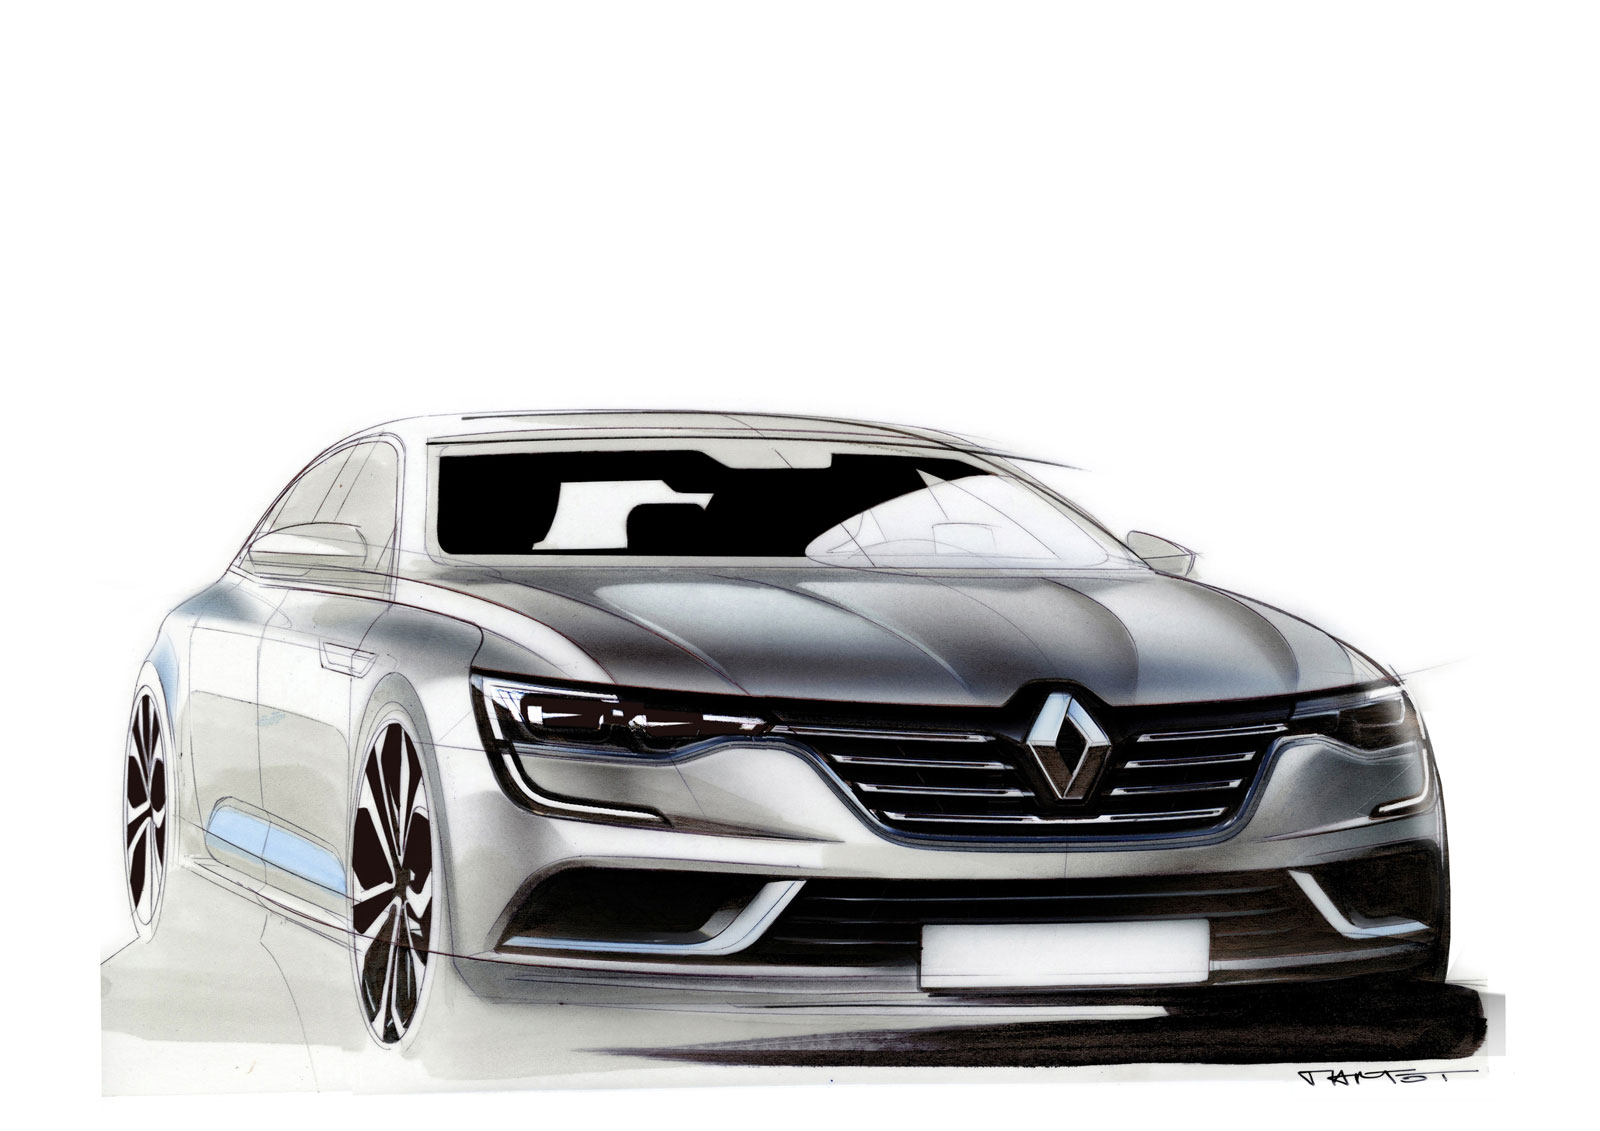 Renault Talisman Design Sketch By Alexis Martot Car Body